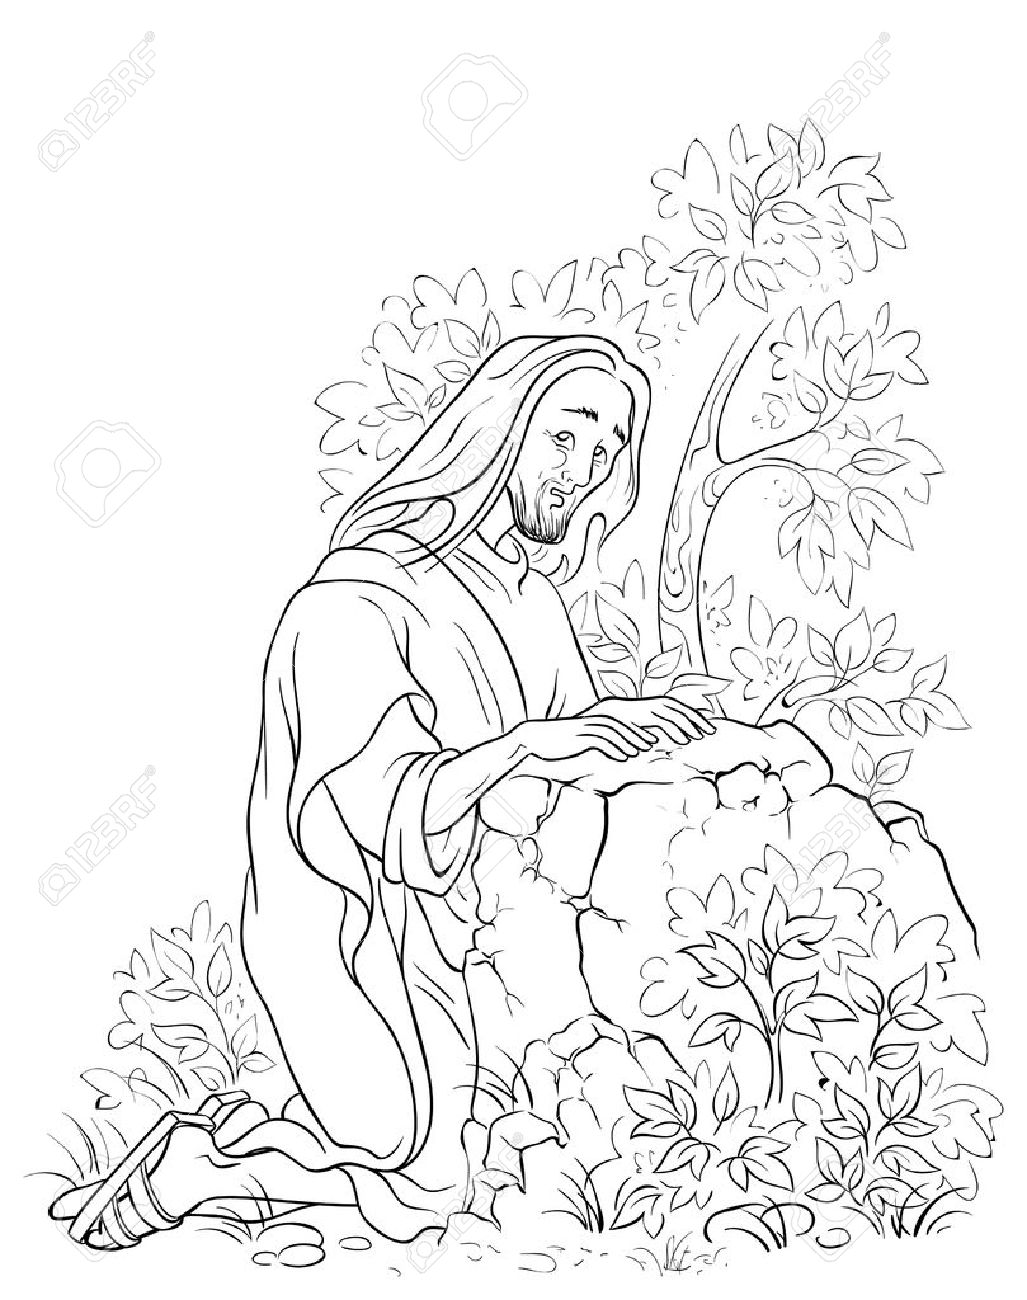 Coloring Pages Of Jesus Praying In The Garden - NEO Coloring